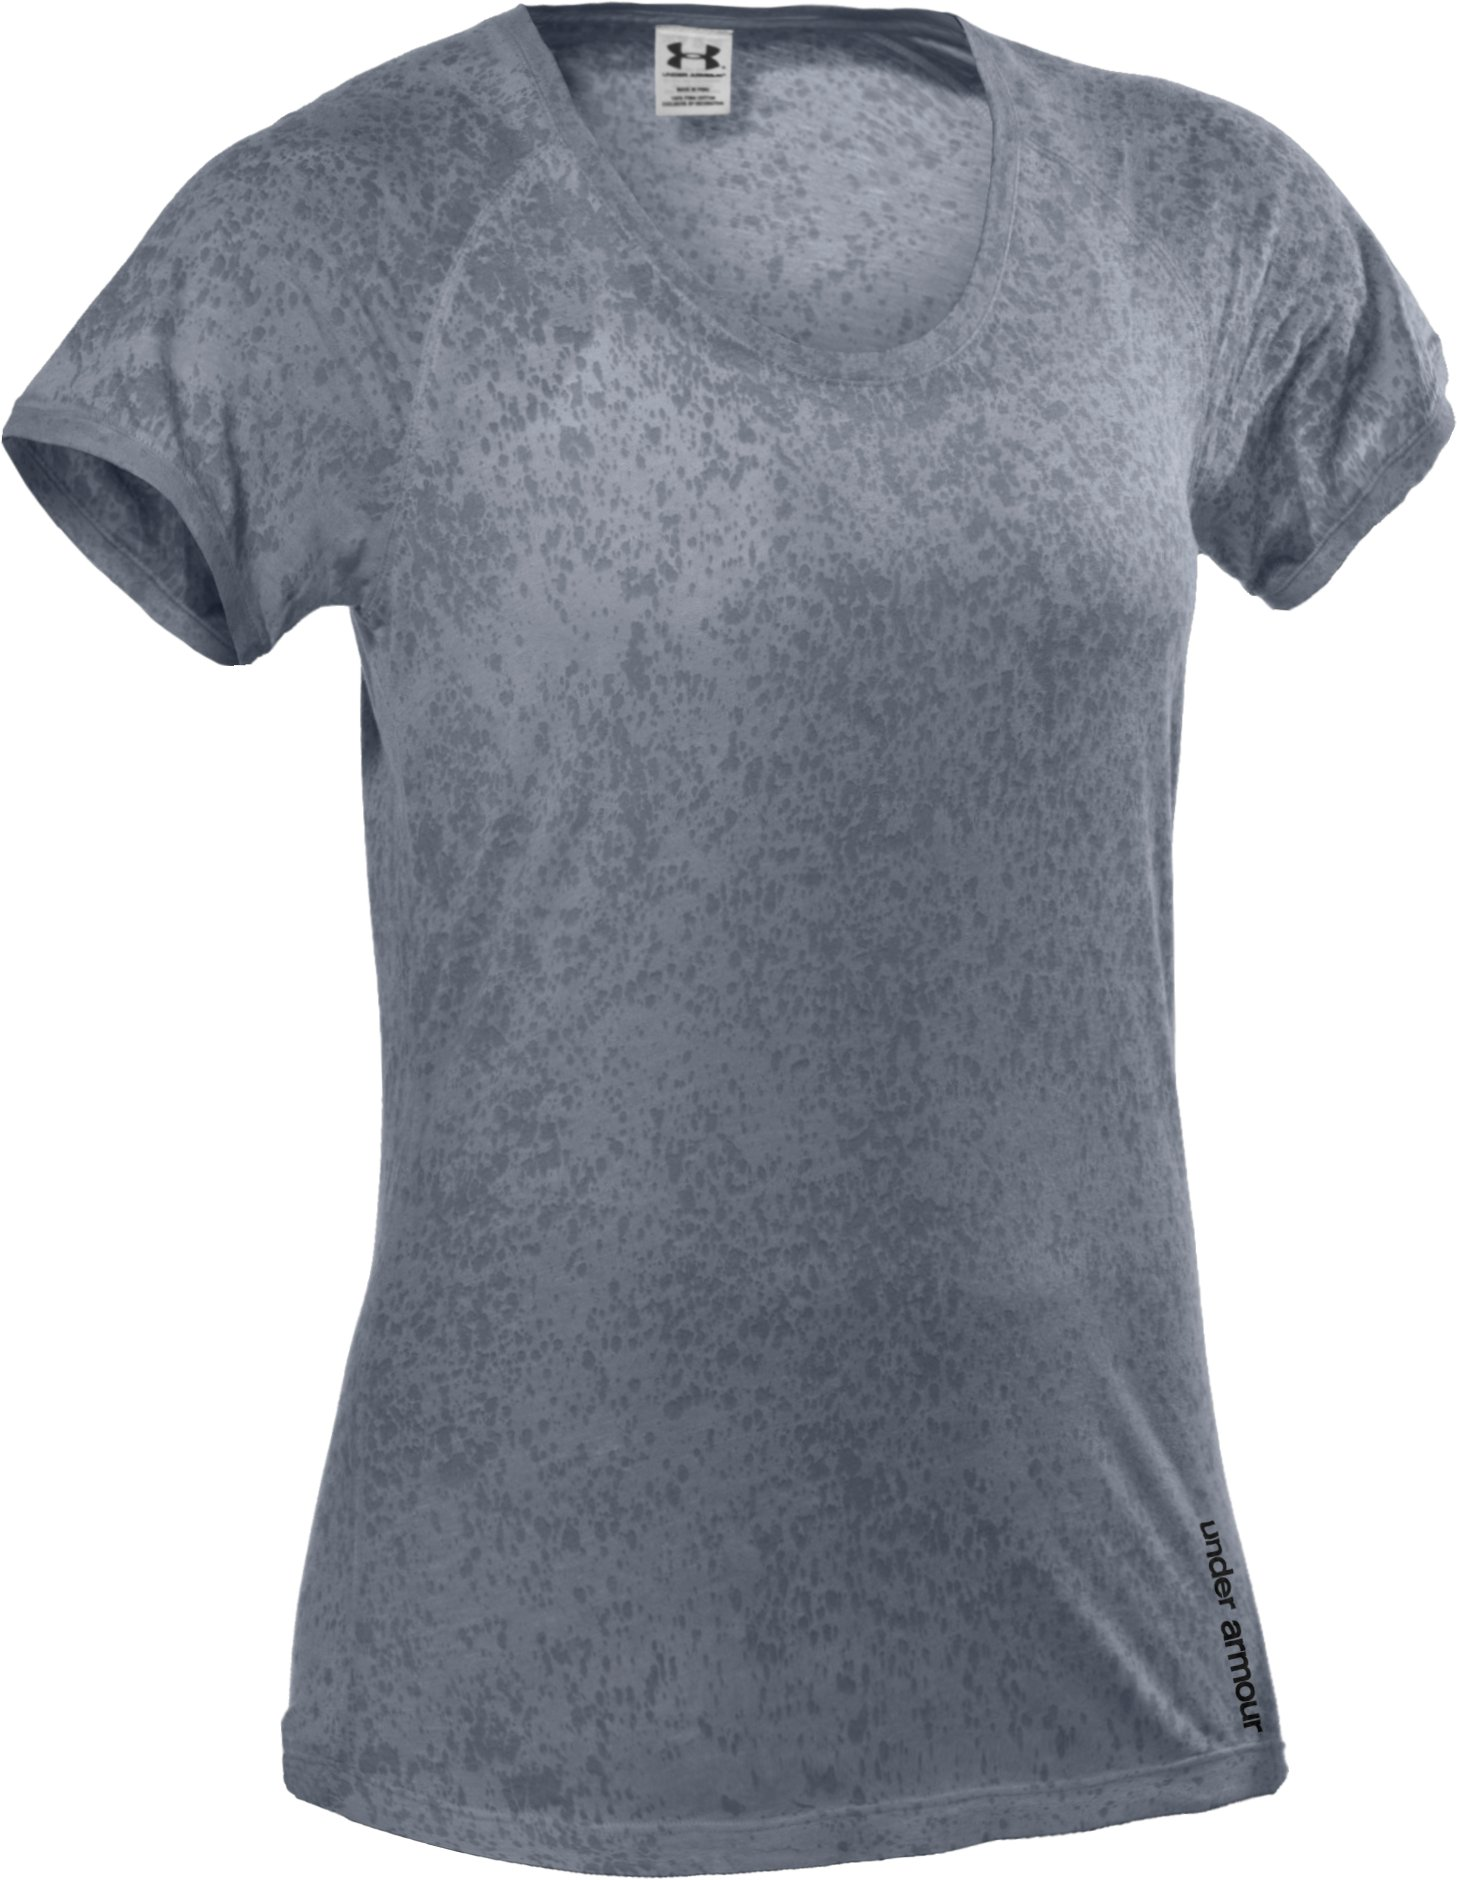 Women's Charged Cotton® Orchid Wash T-Shirt, Steel, undefined